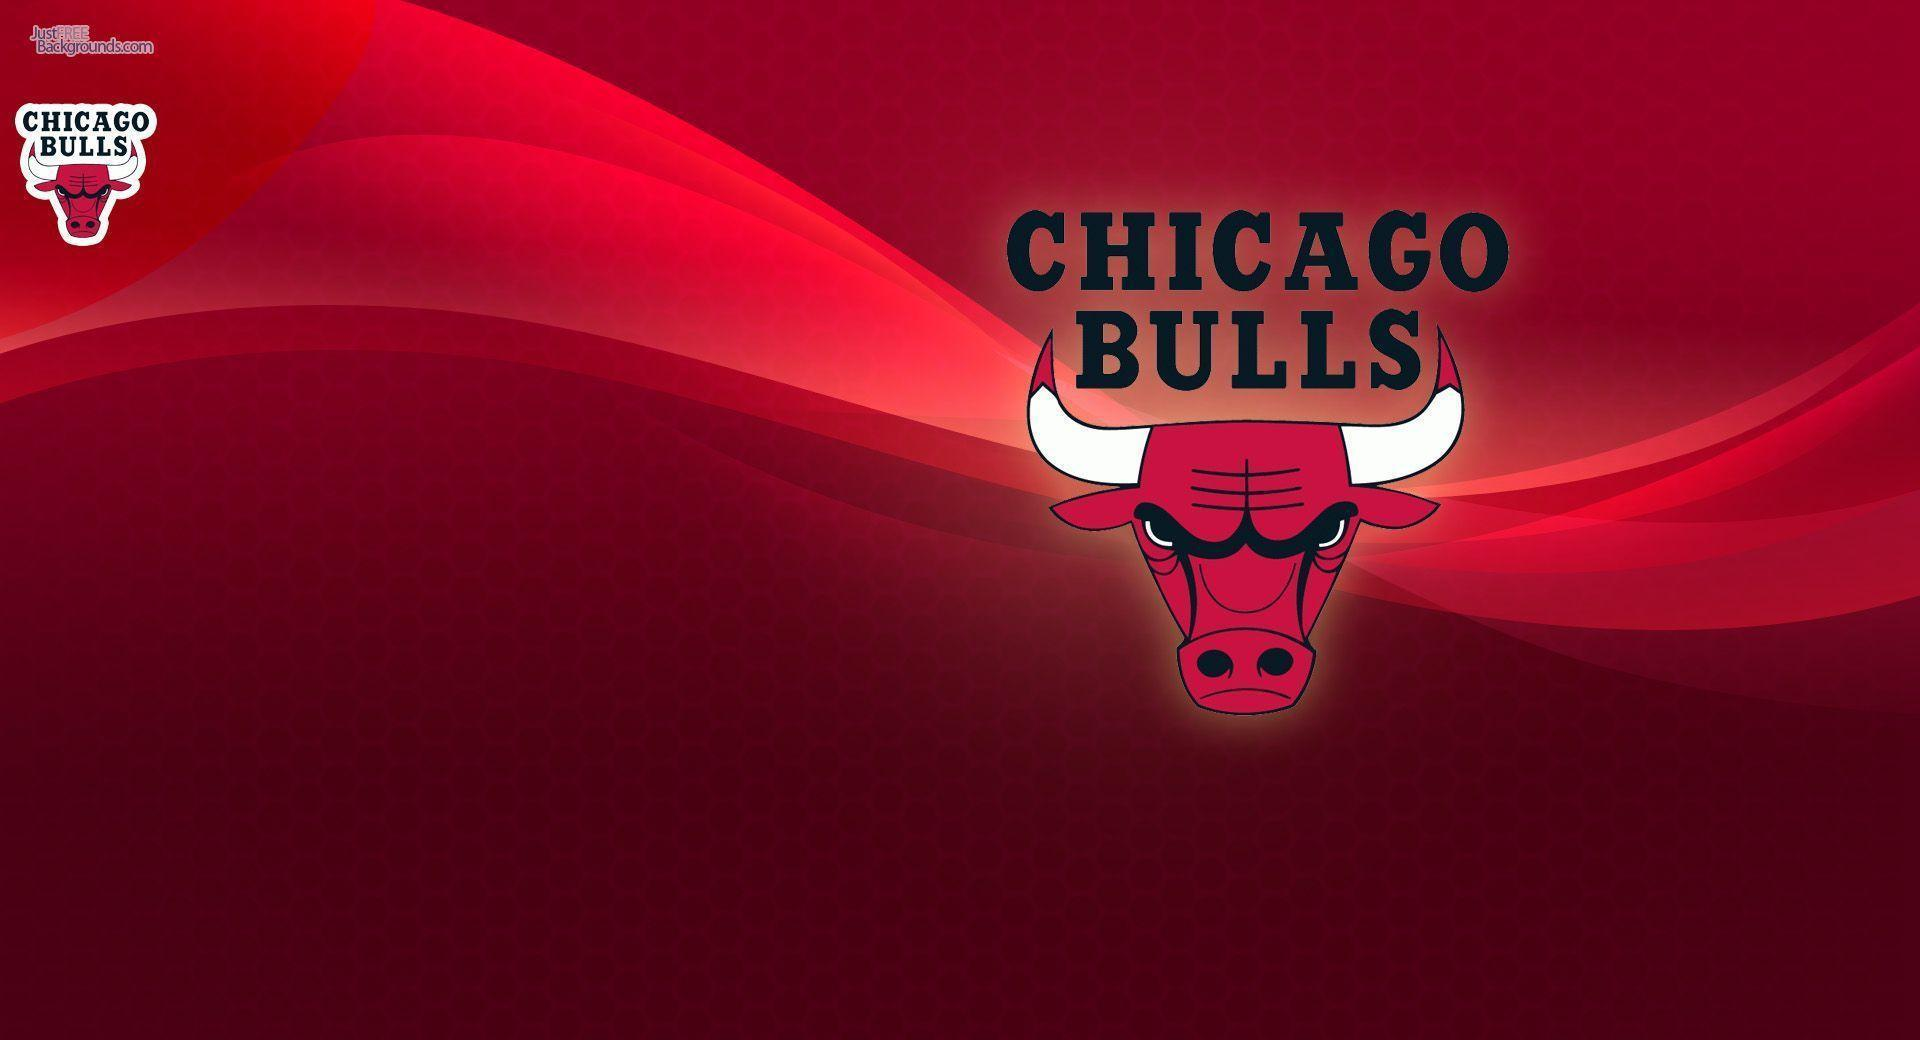 Bull Wallpapers Group With 61 Items: Chicago Bulls HD Wallpapers